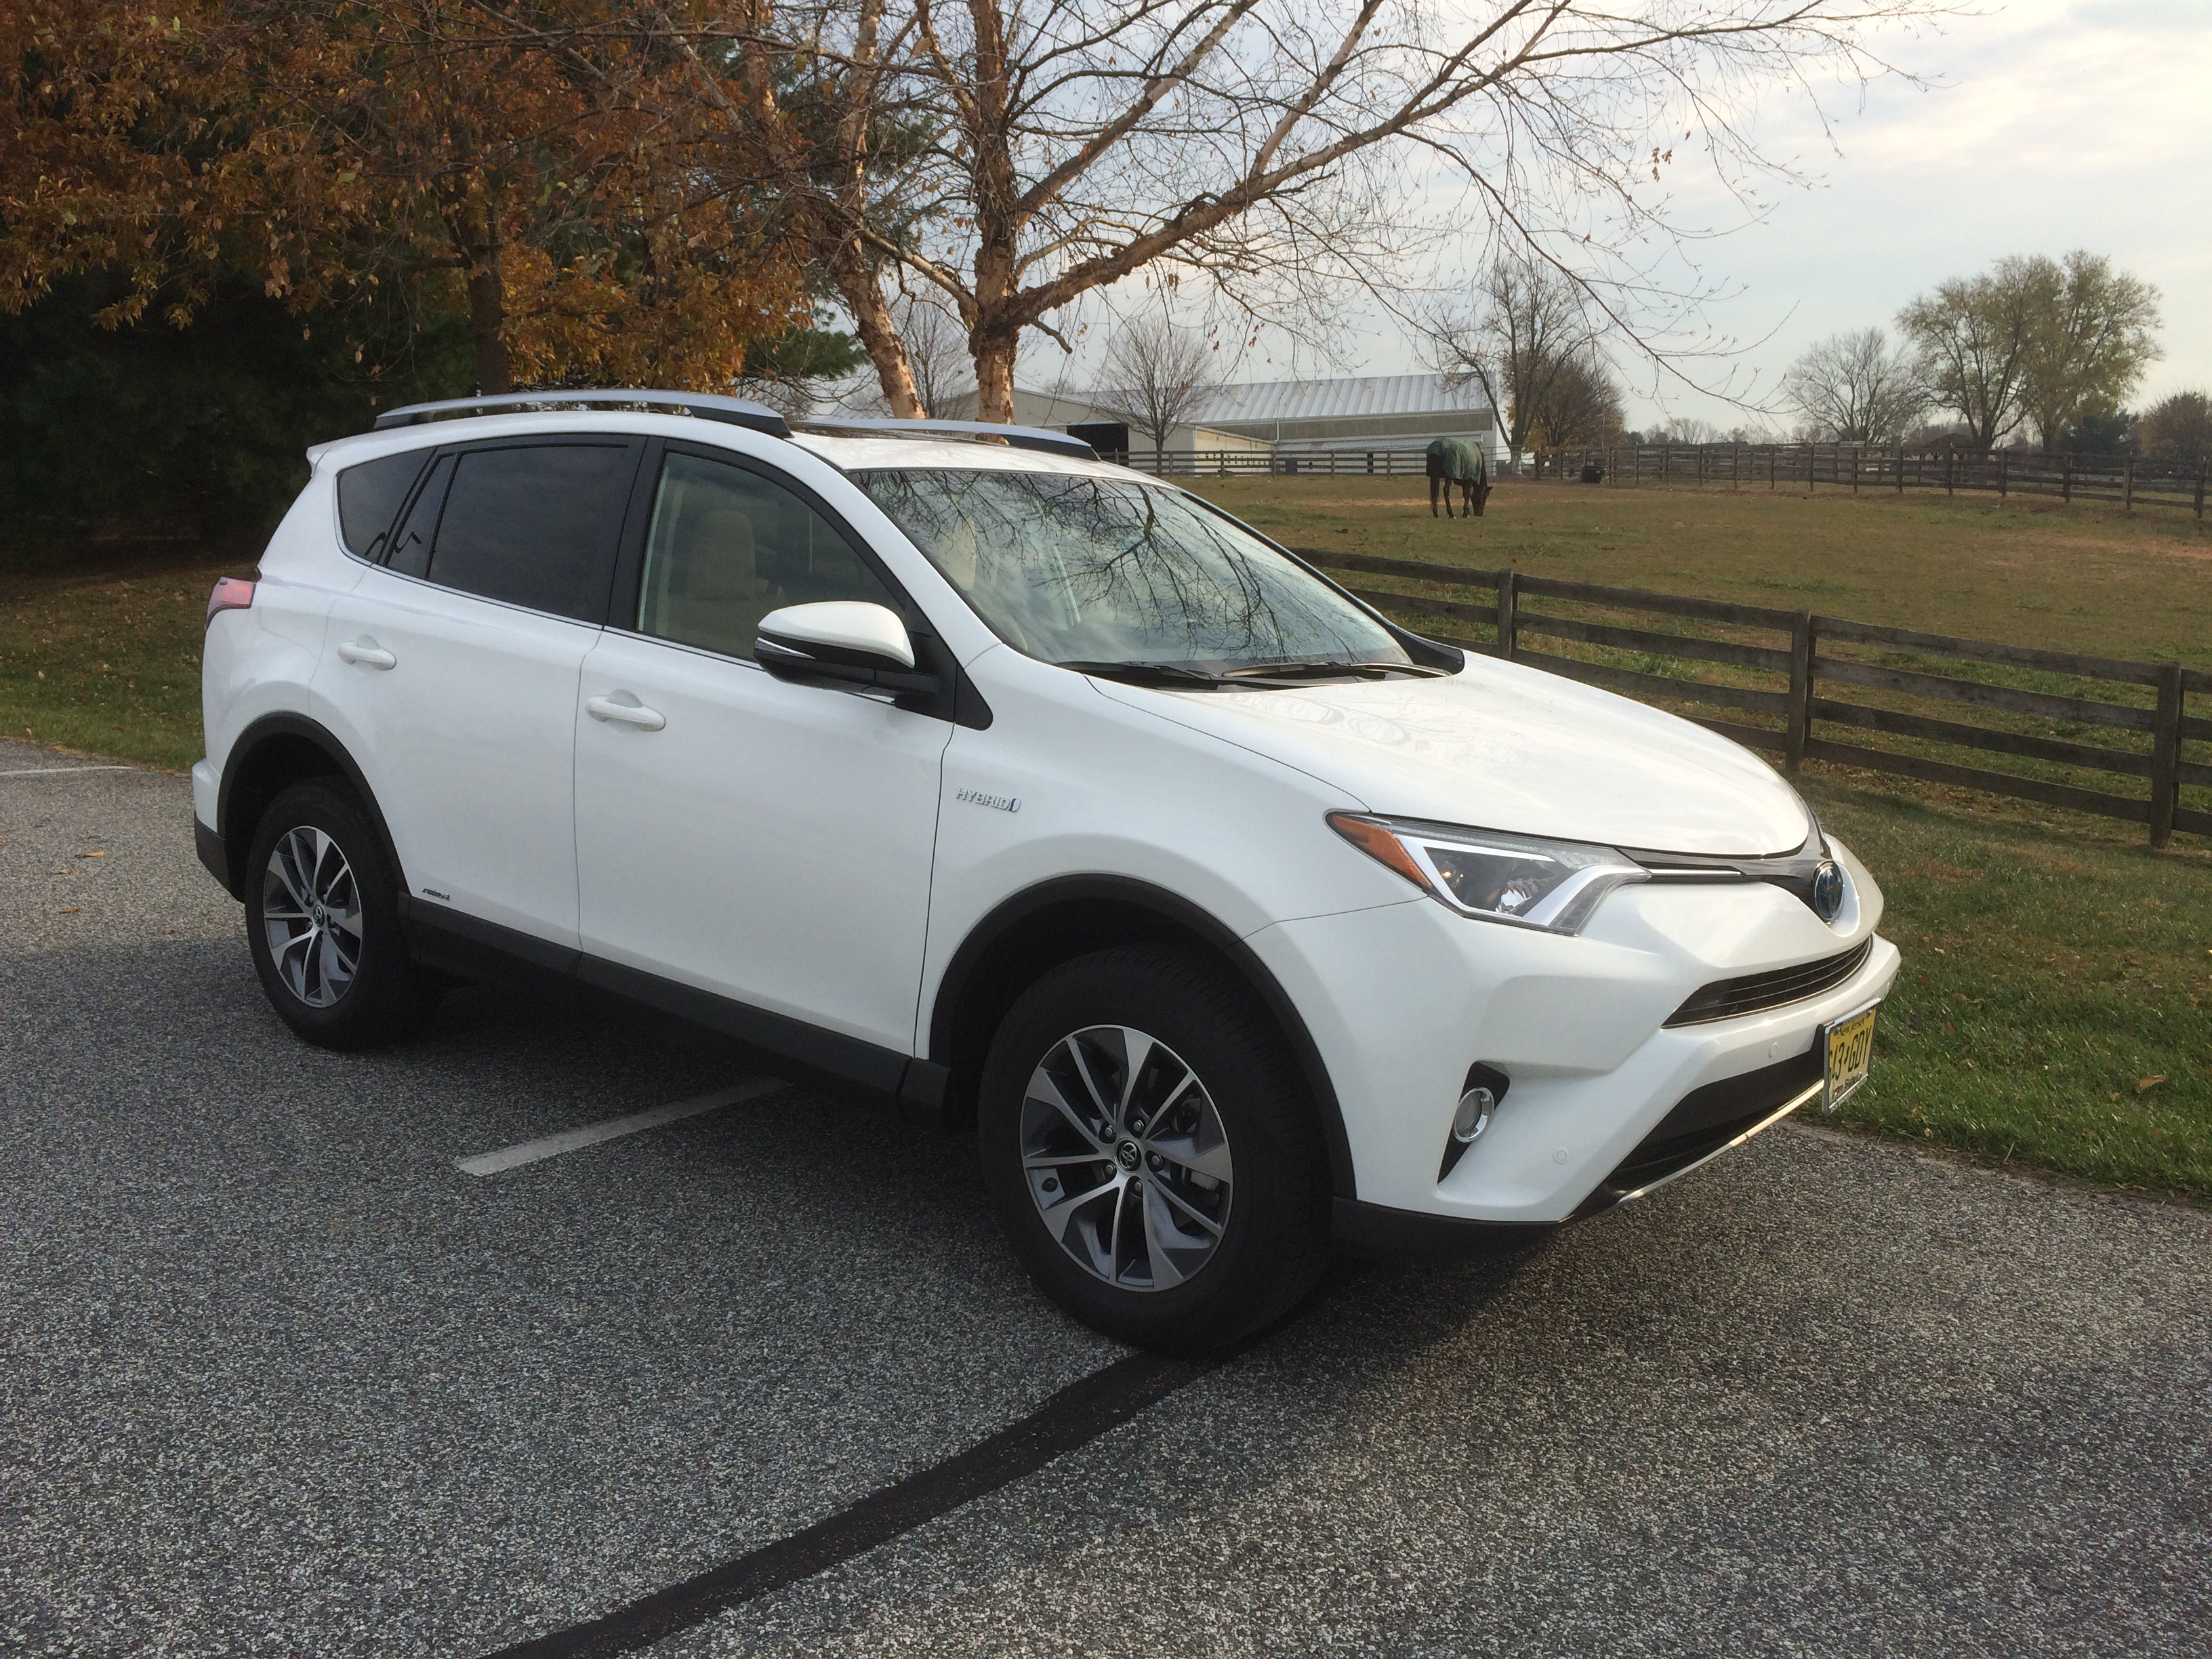 Rav4 Hybrid A Compact Crossover With Good Fuel Economy